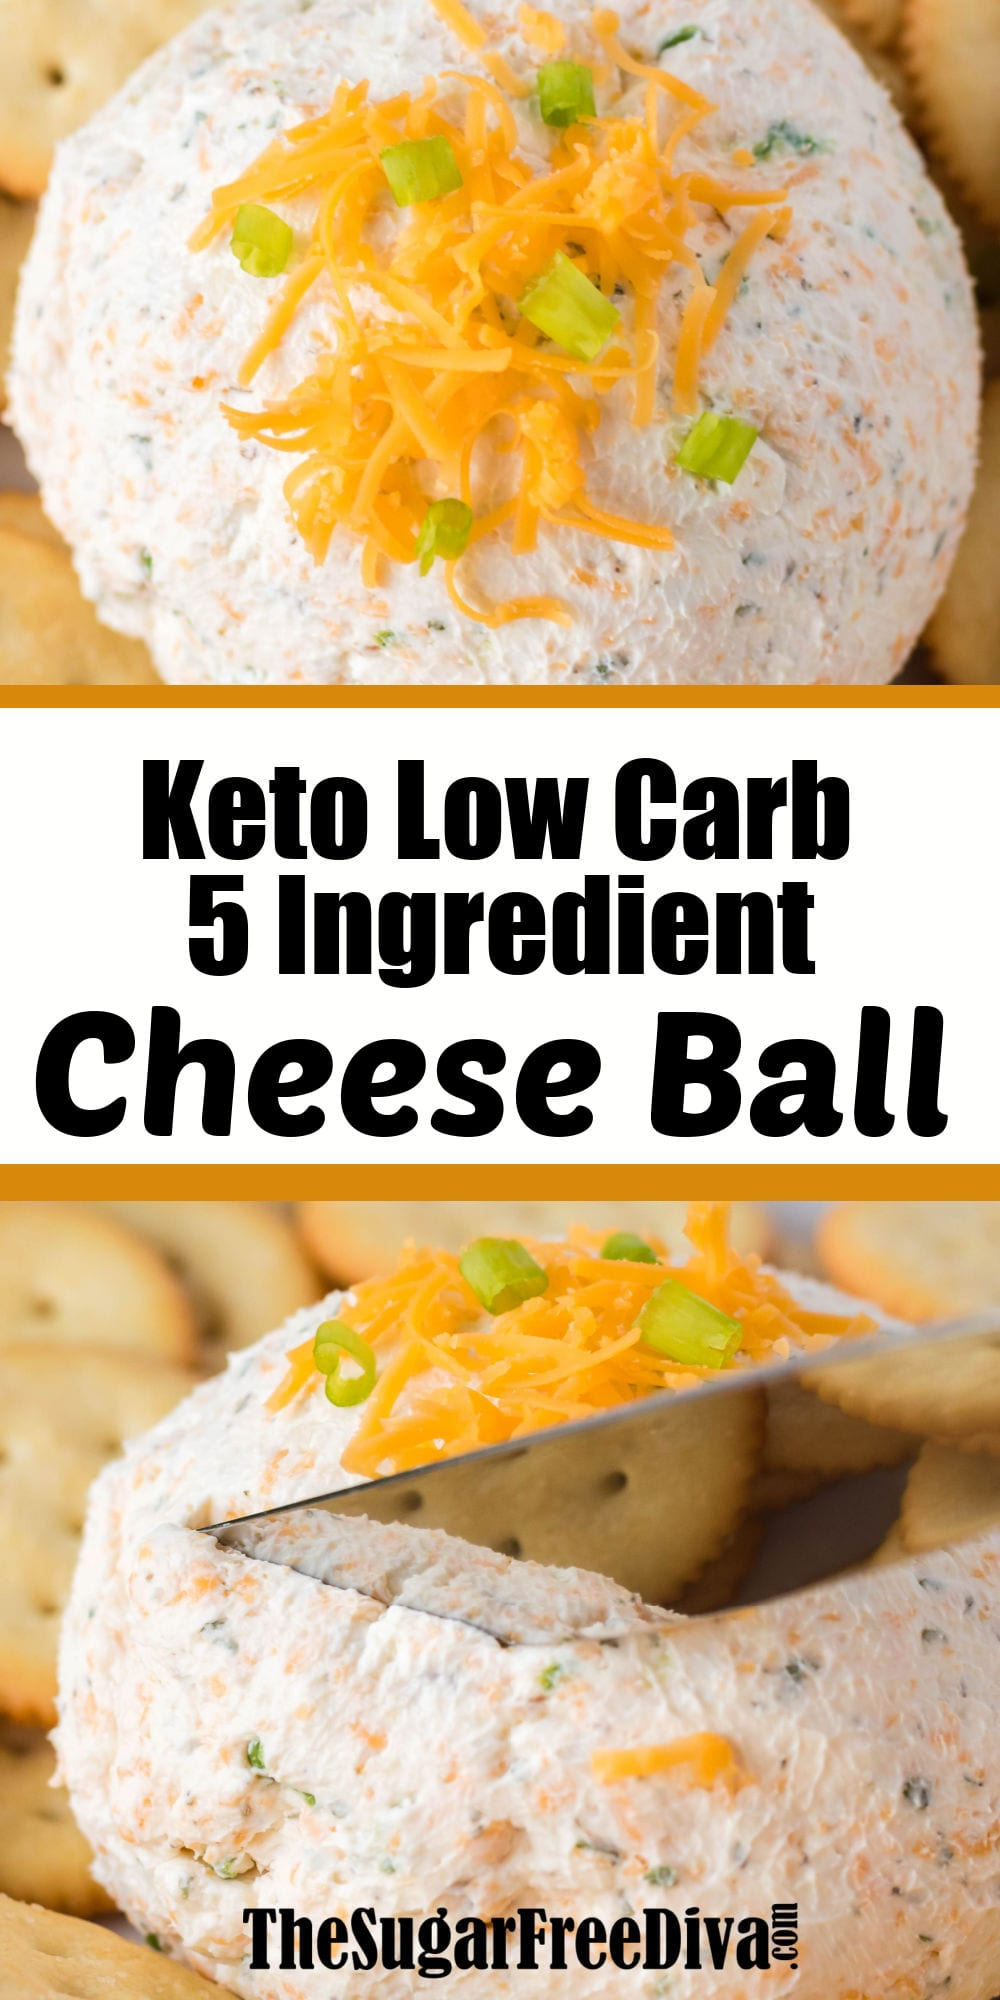 5 Ingredient Keto Low Carb Cheese Ball